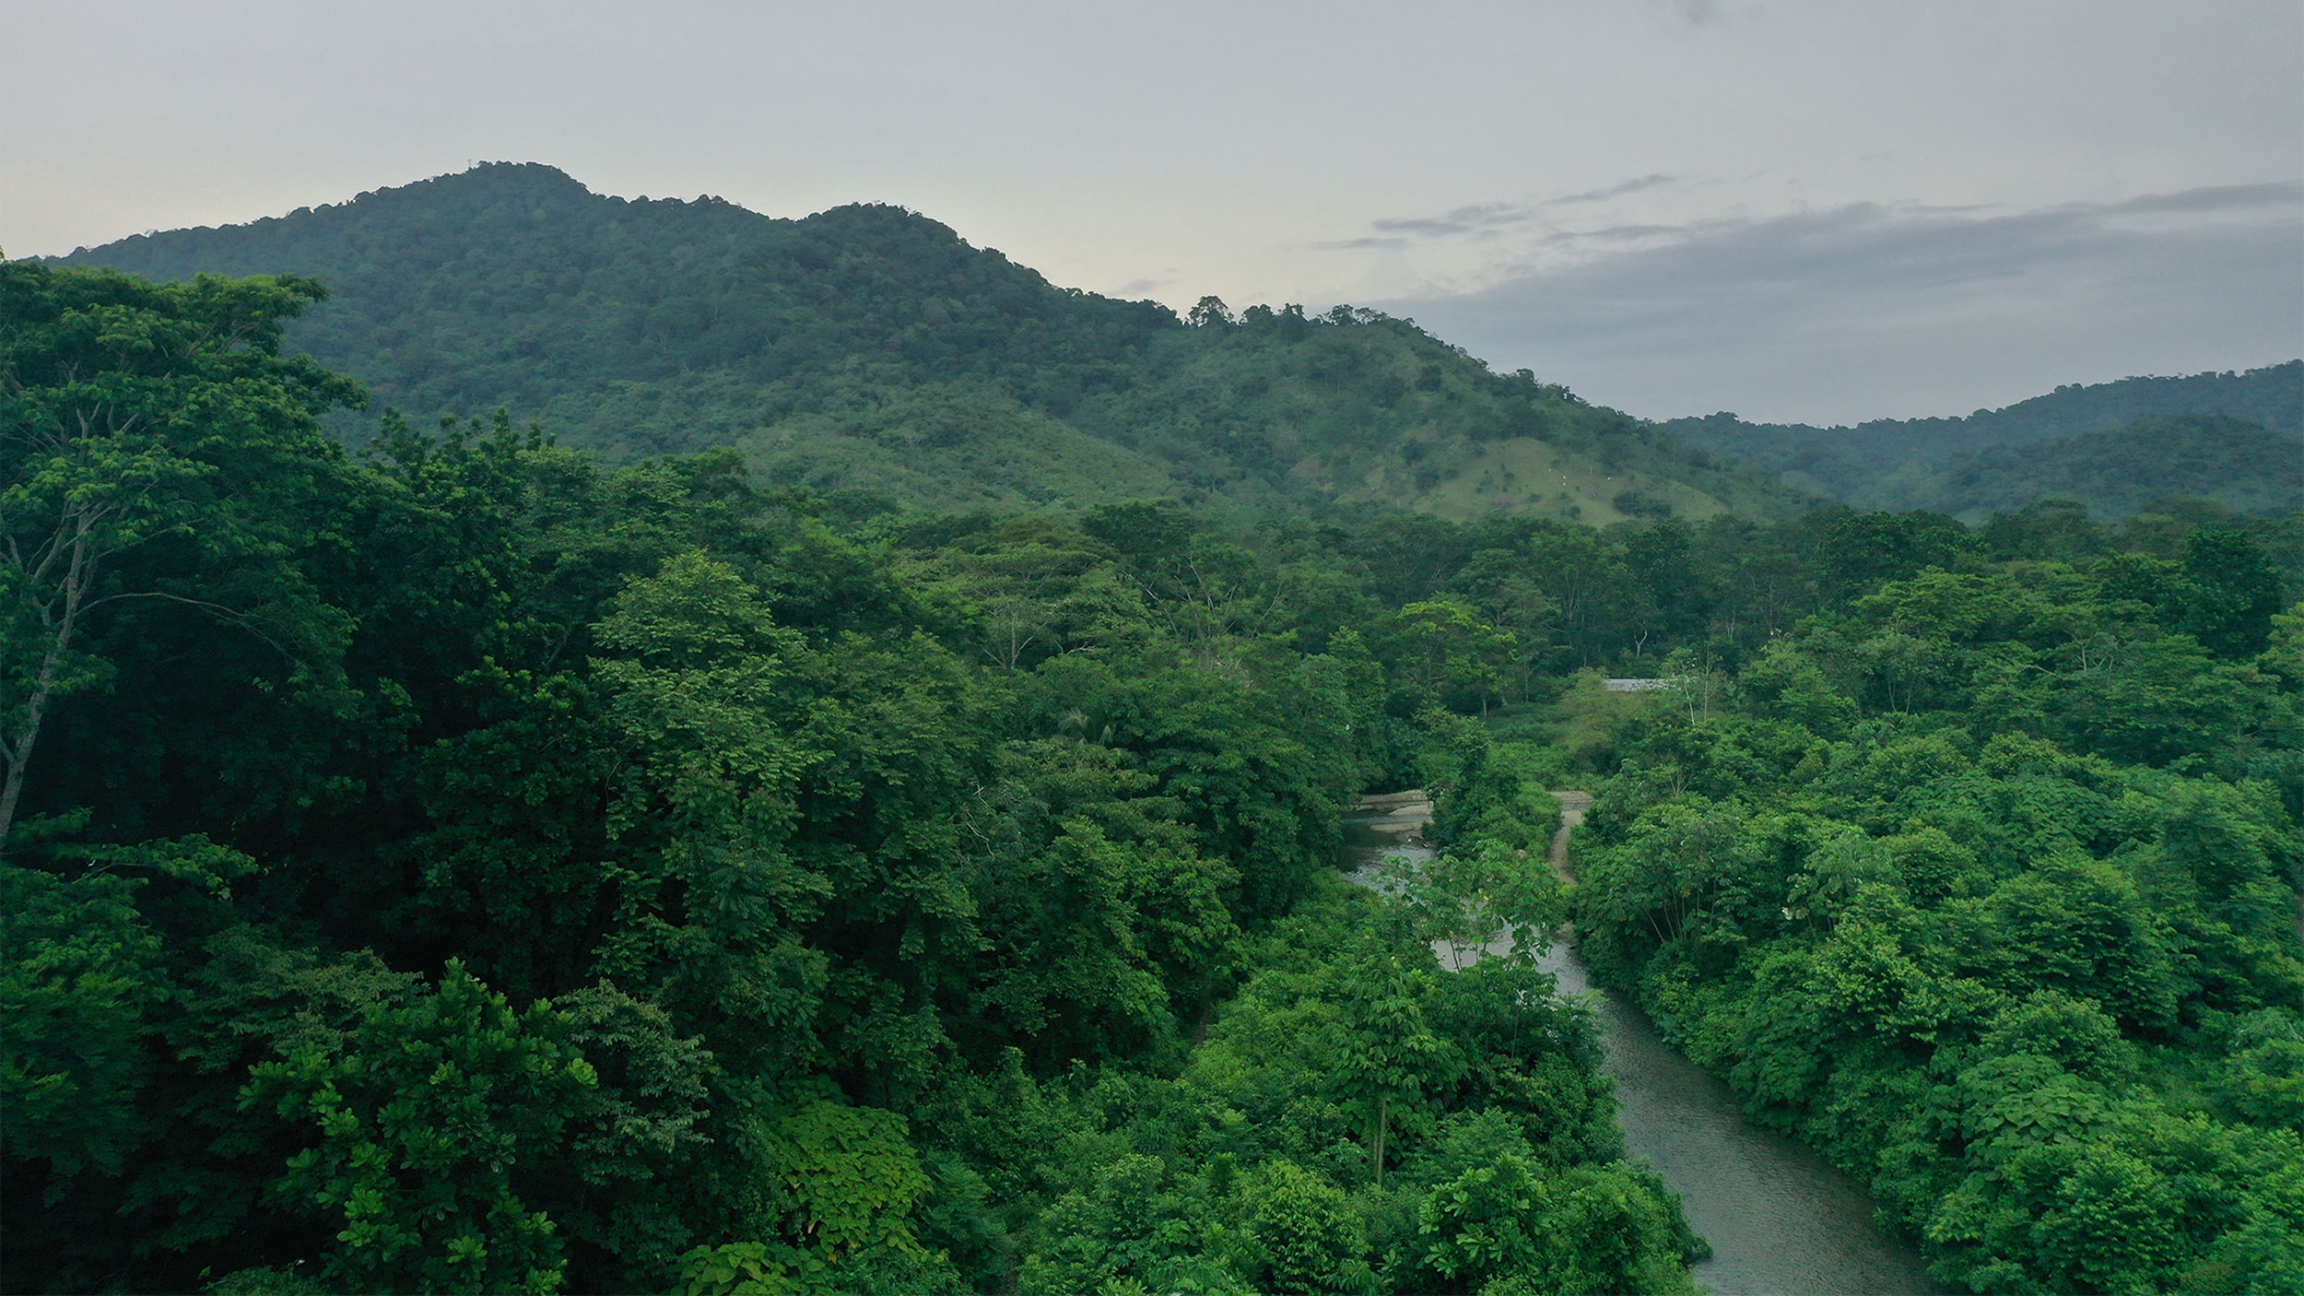 Aerial view of the green vegetation of the Darien jungle